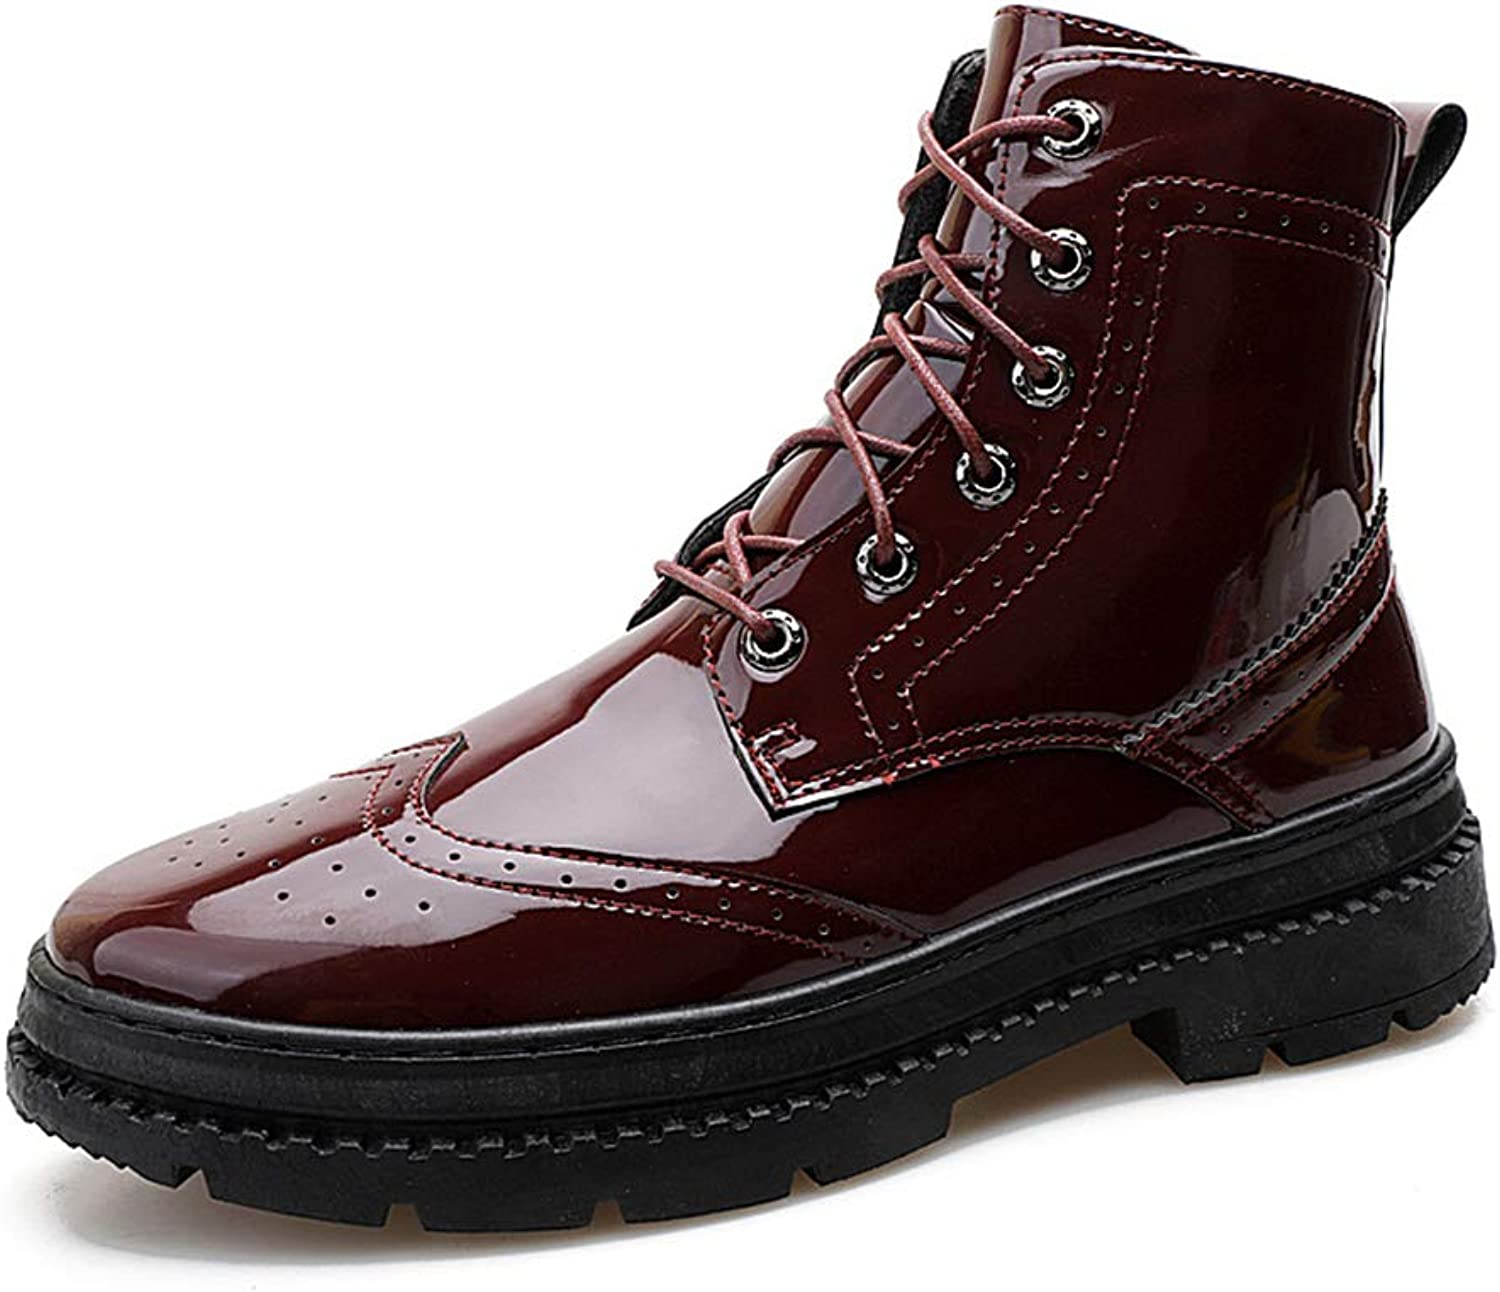 Men'S shoes, British High-Top Men'S shoes Fall Breathable Leather shoes Mens Patent Leather Glossy Casual shoes Fashion Casual shoes,B,41